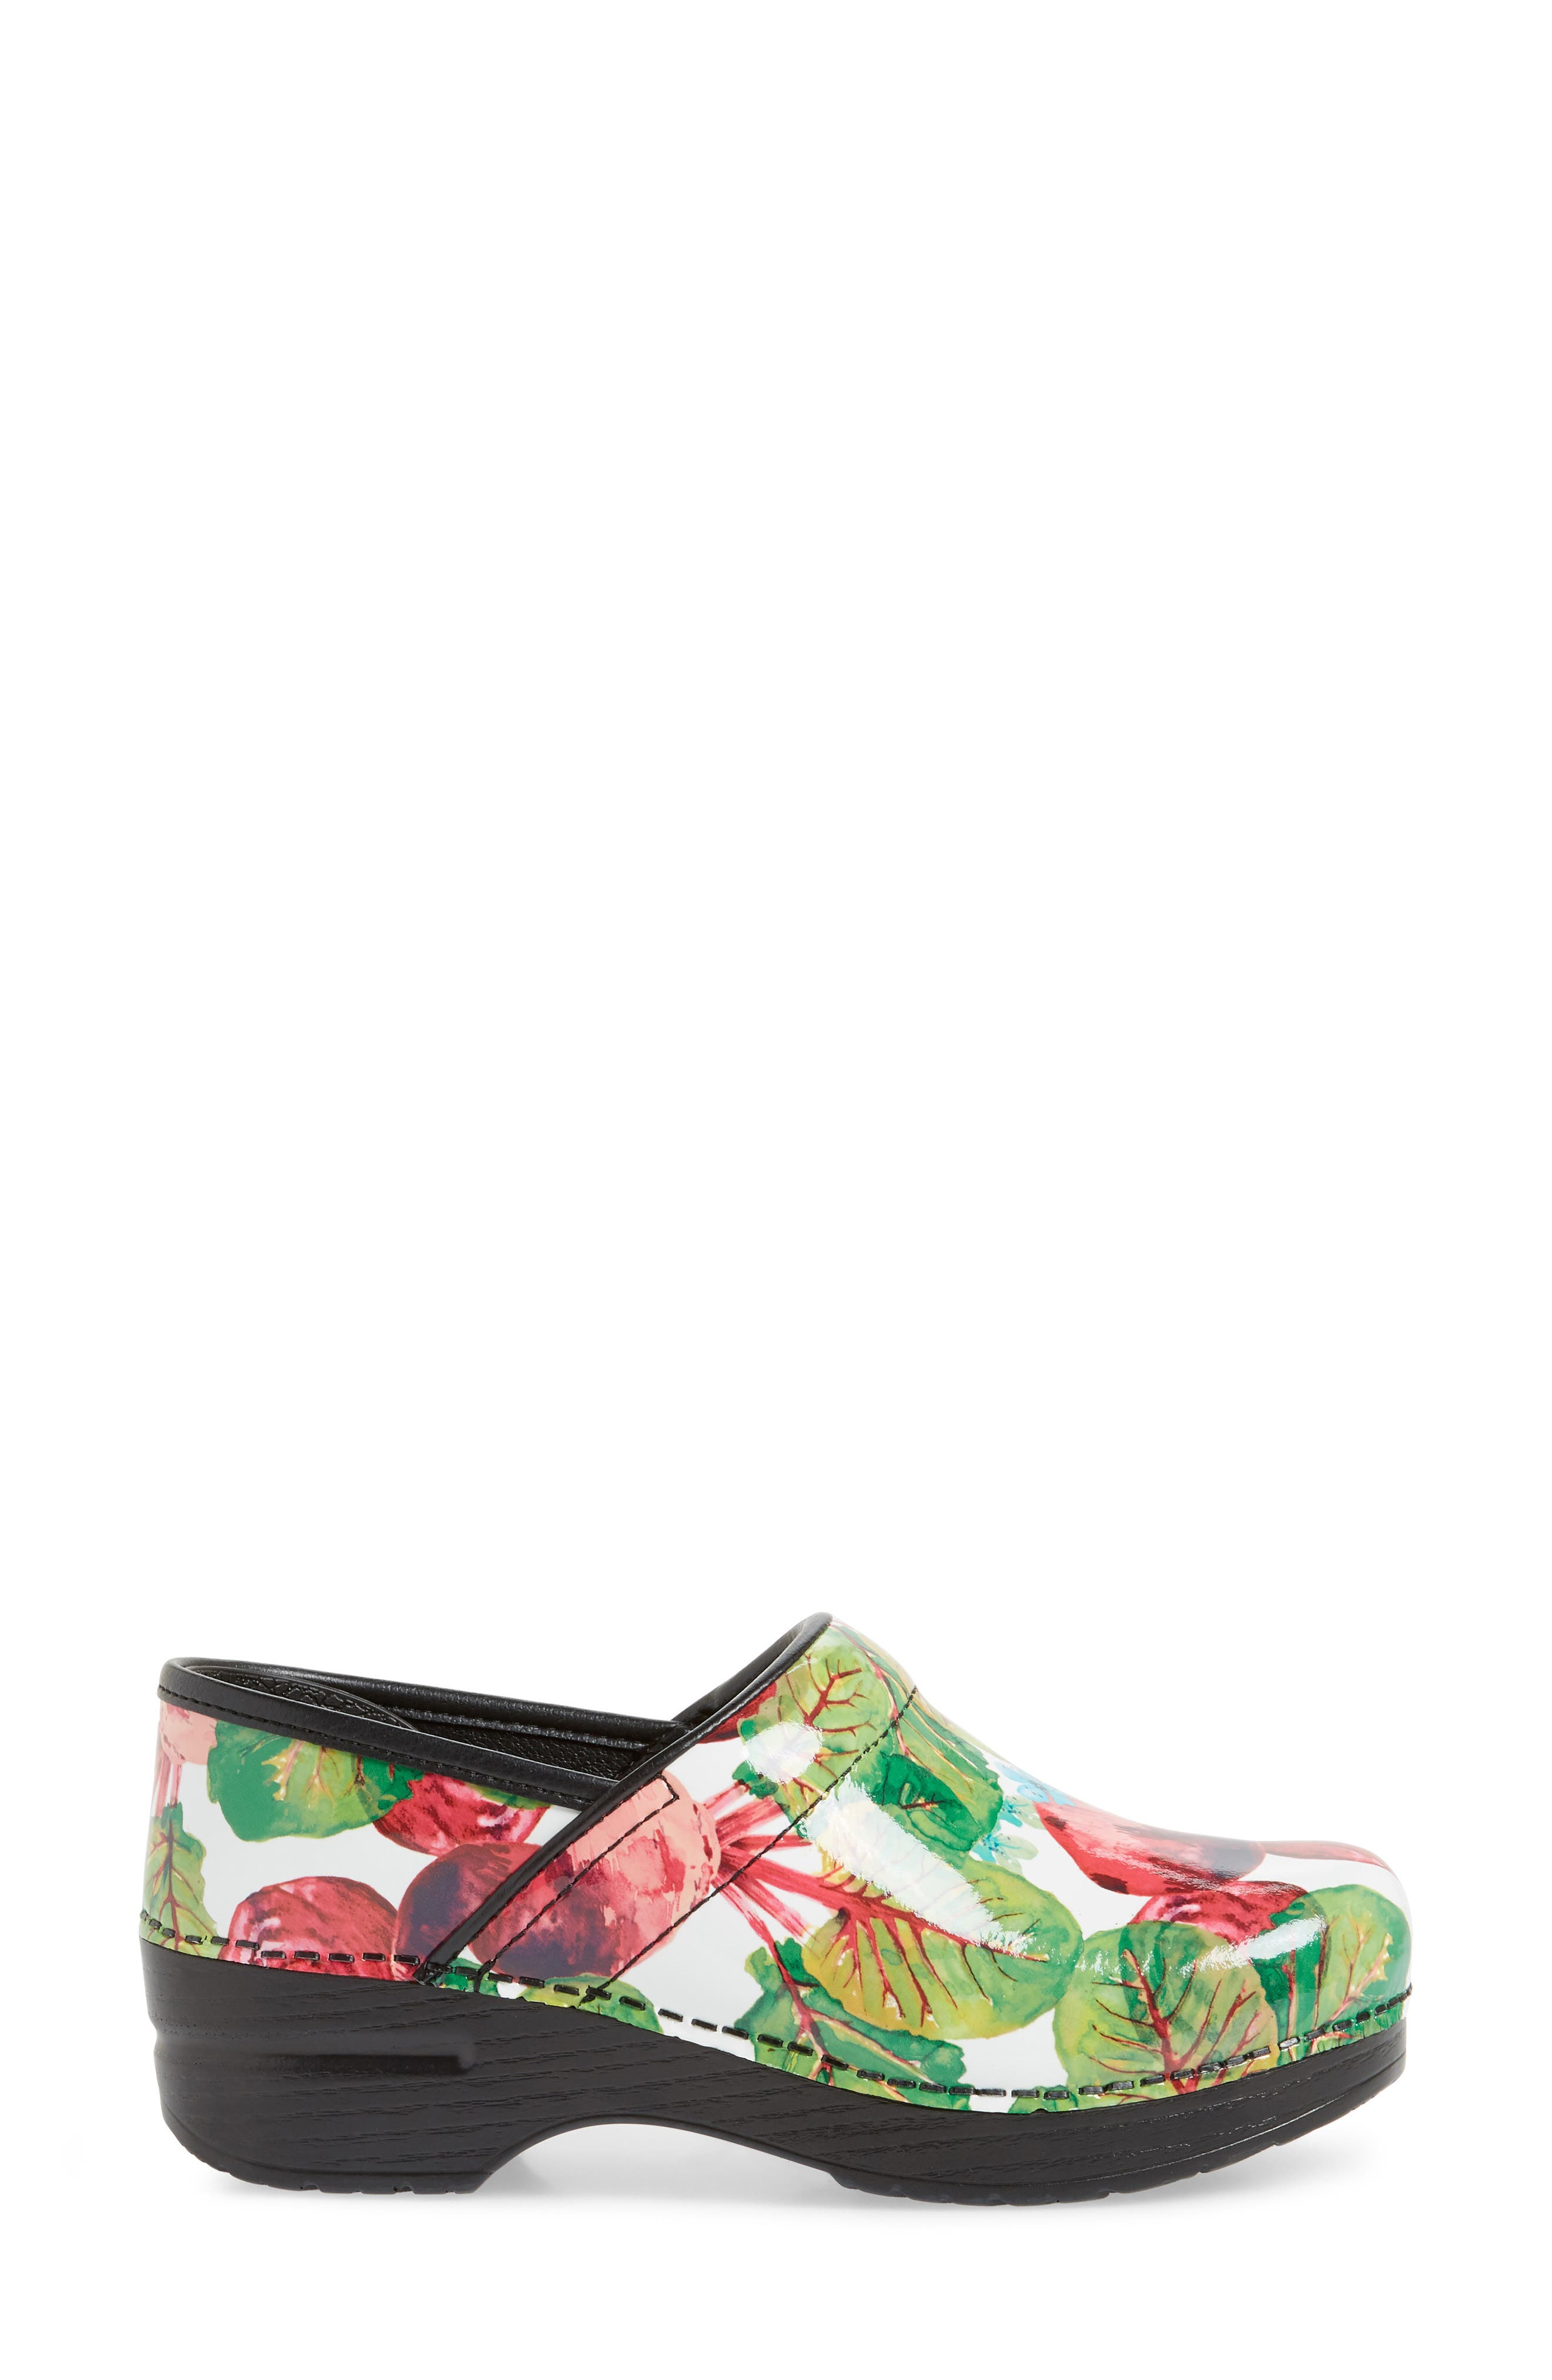 'Professional' Clog,                             Alternate thumbnail 3, color,                             BEETS PATENT LEATHER